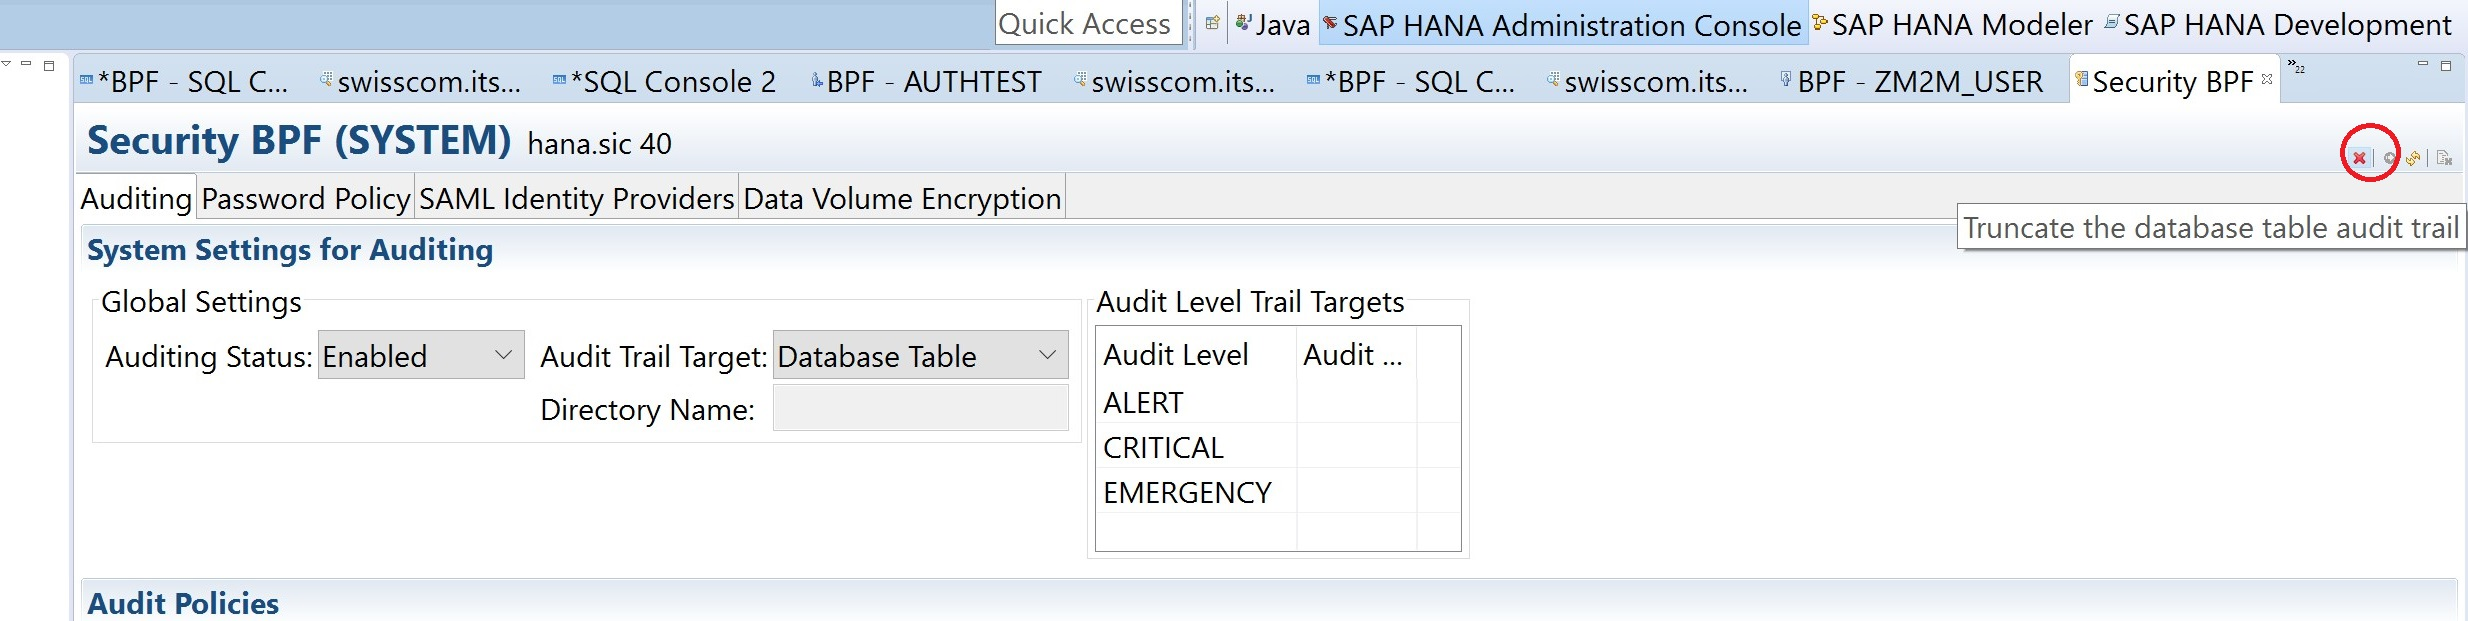 How To Setup Sap Hana Audit Trace Quick Start Blogs Database Security And Auditing Wp Content Uploads 2015 08 Button Truncate 770788